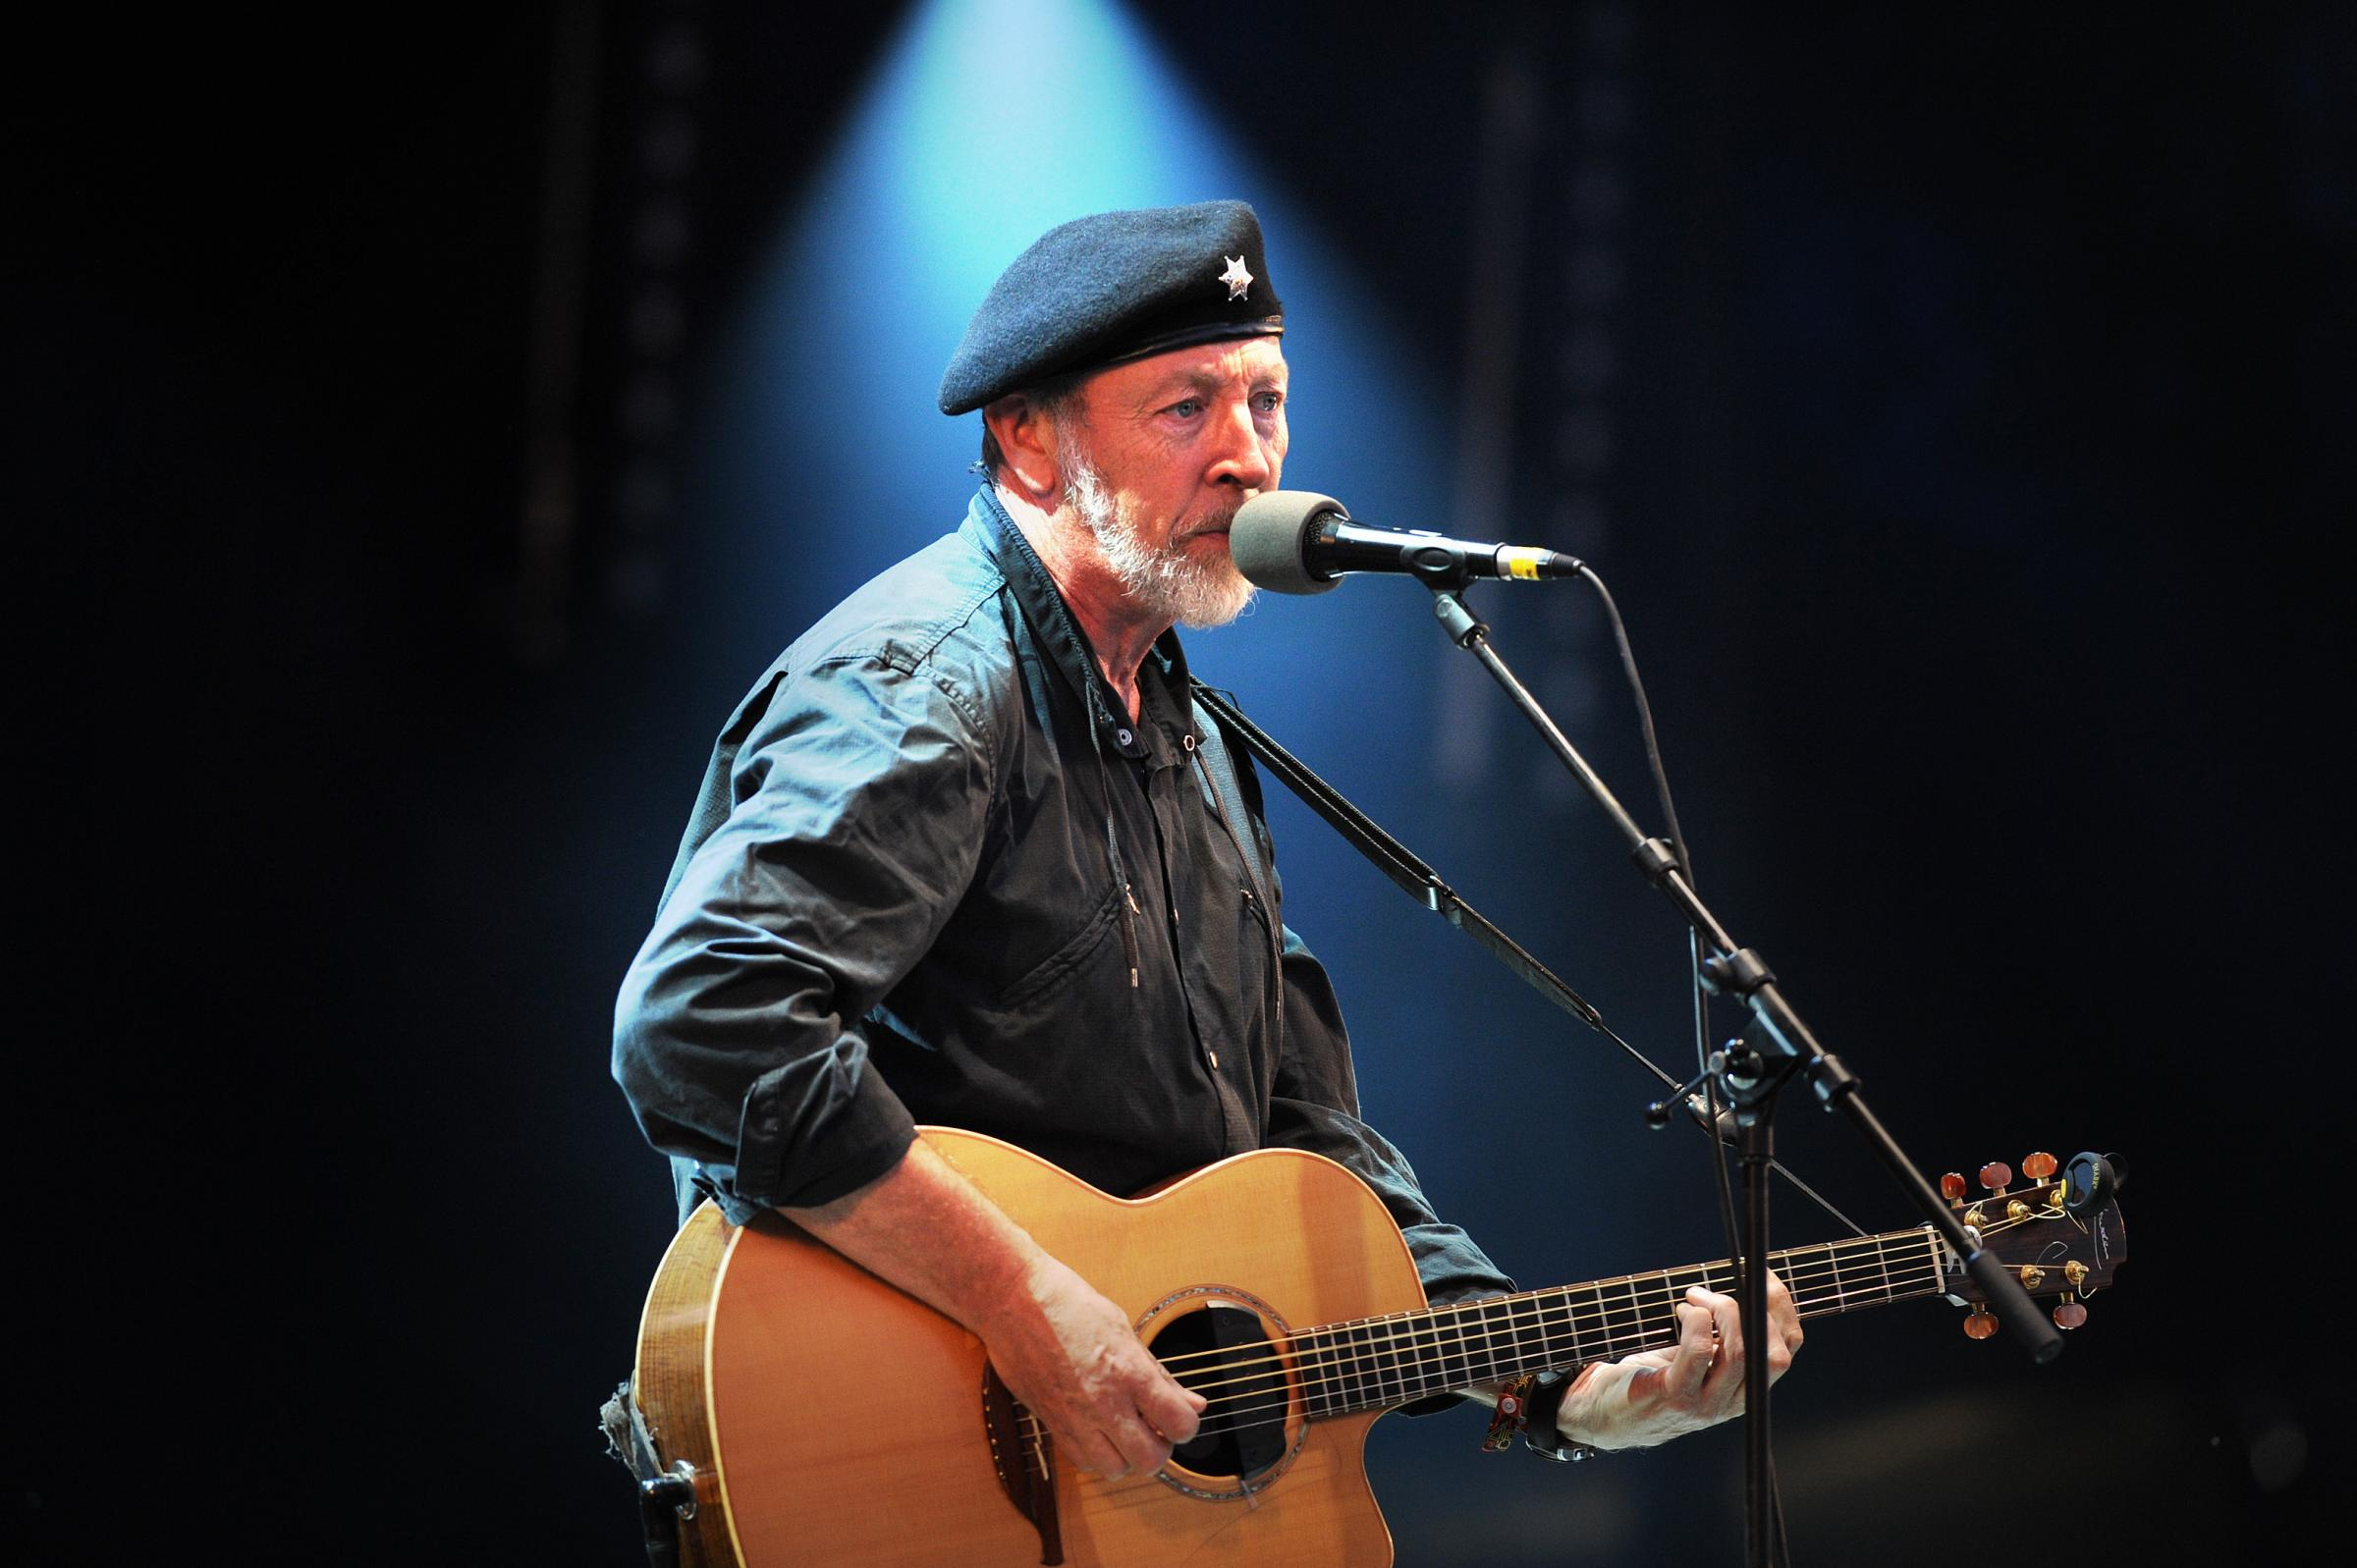 Cropredy Festival: Fairport Convention's Richard Thompson returns + everything you need to know